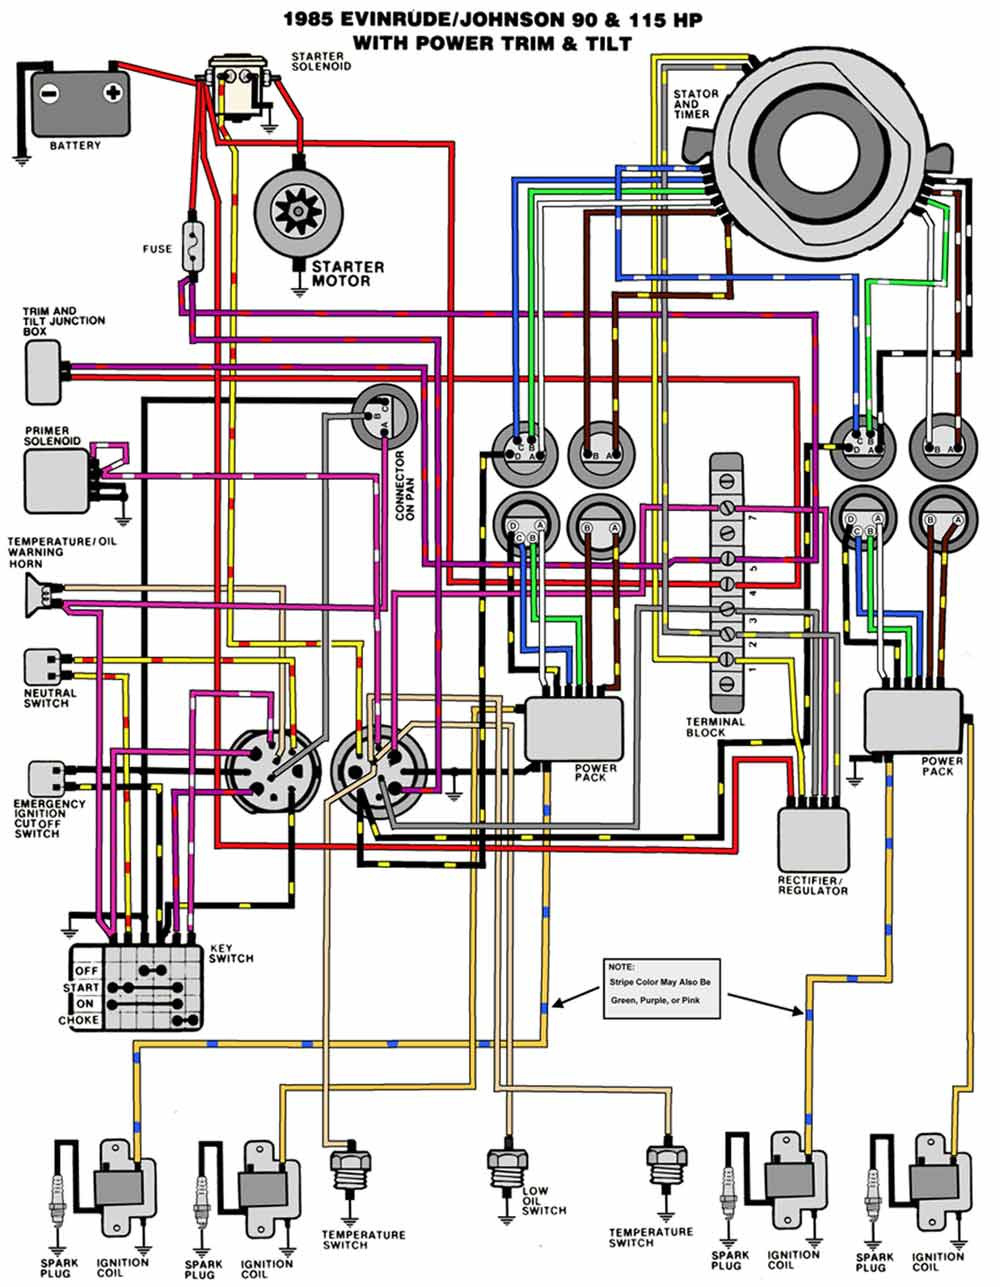 1988 Johnson Outboard Wiring Harness - Free Wiring Diagram For You • - Johnson Outboard Wiring Diagram Pdf